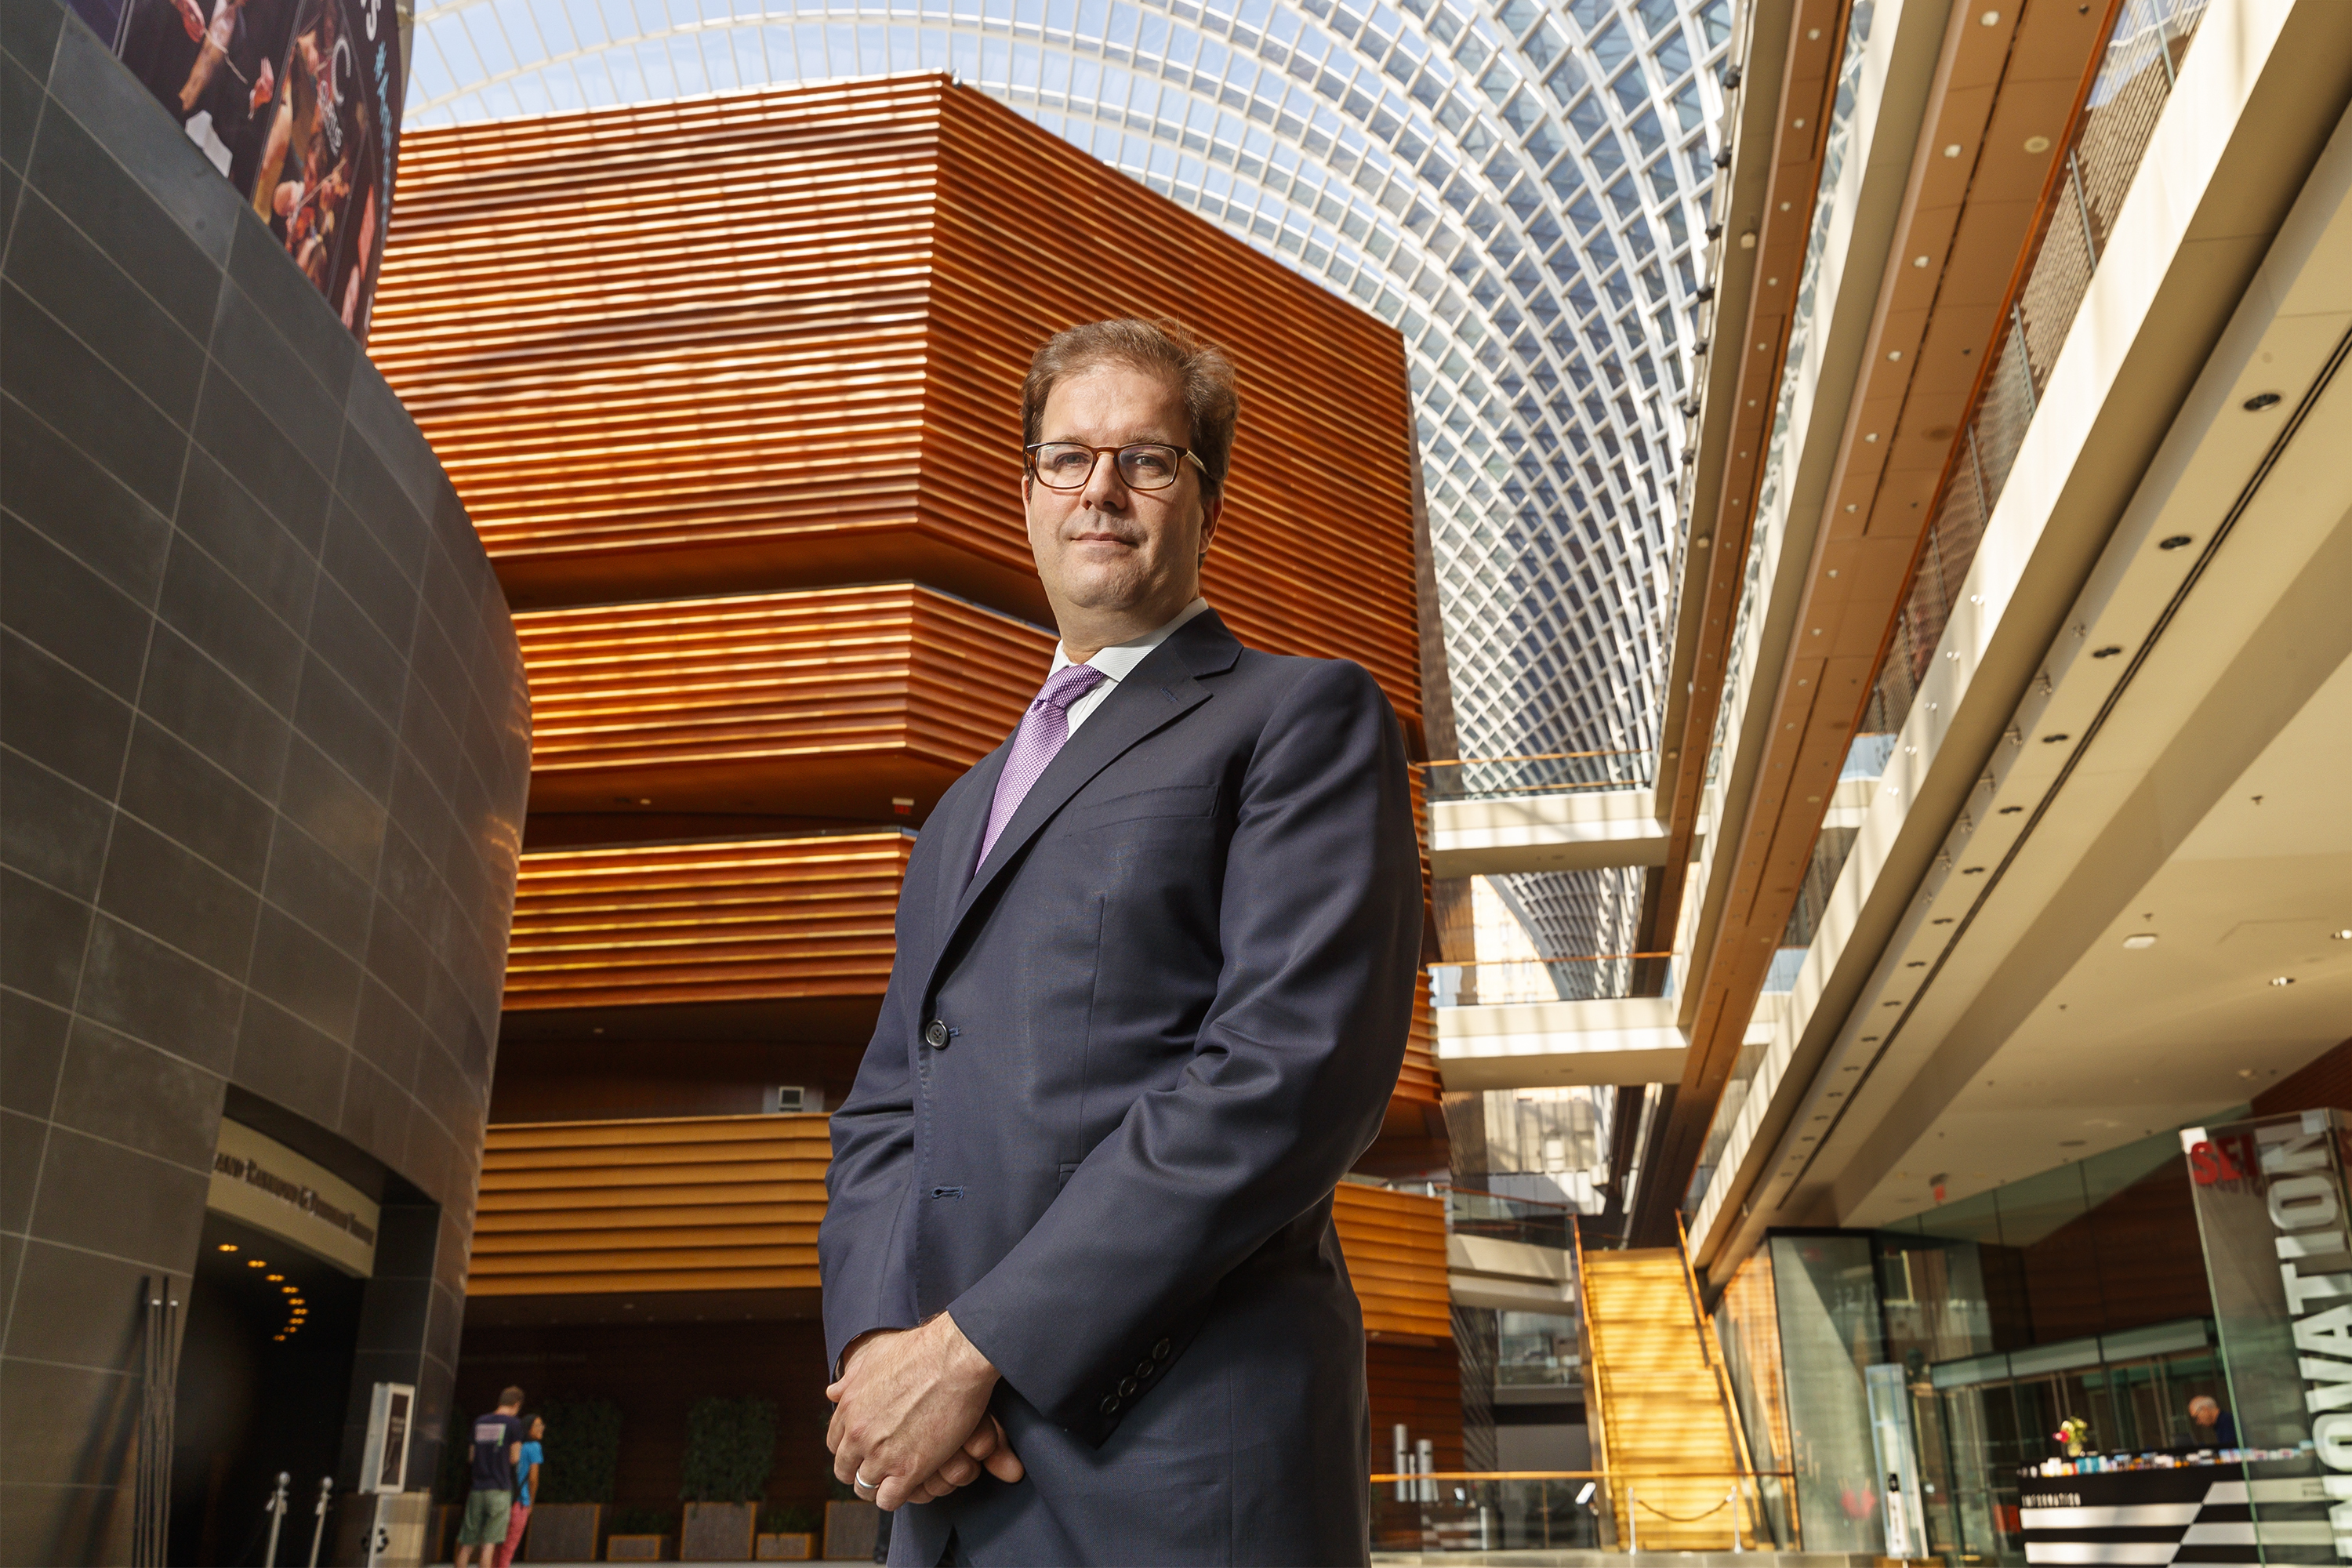 New Philadelphia Orchestra CEO Matias Tarnopolsky at the Kimmel Center. MICHAEL BRYANT / Staff Photographer